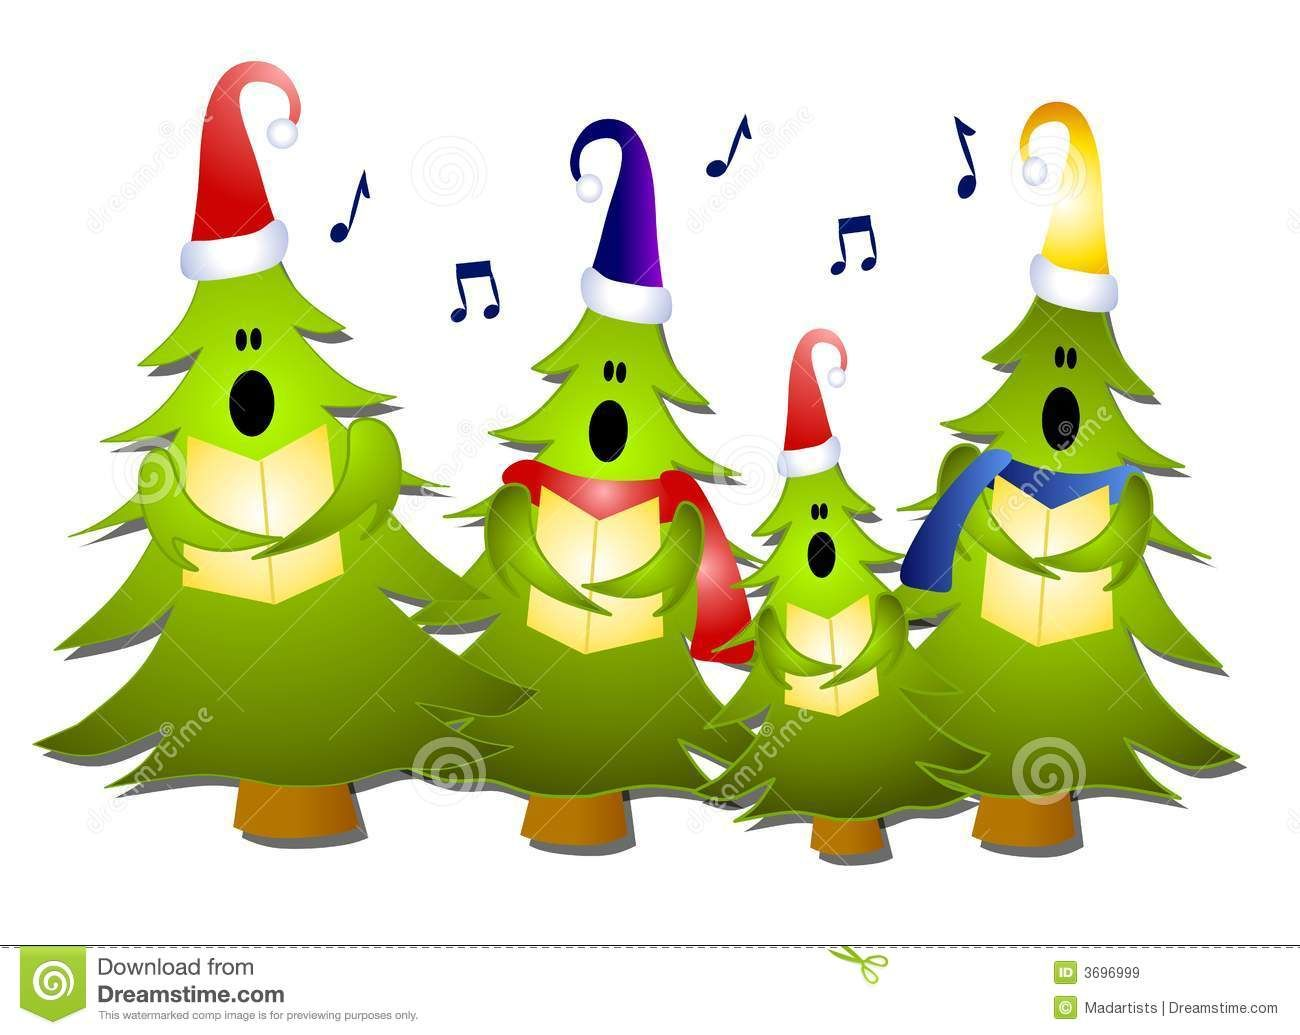 Clip Art Illustration Of A Group Of Christmas Tree Carolers Singing.